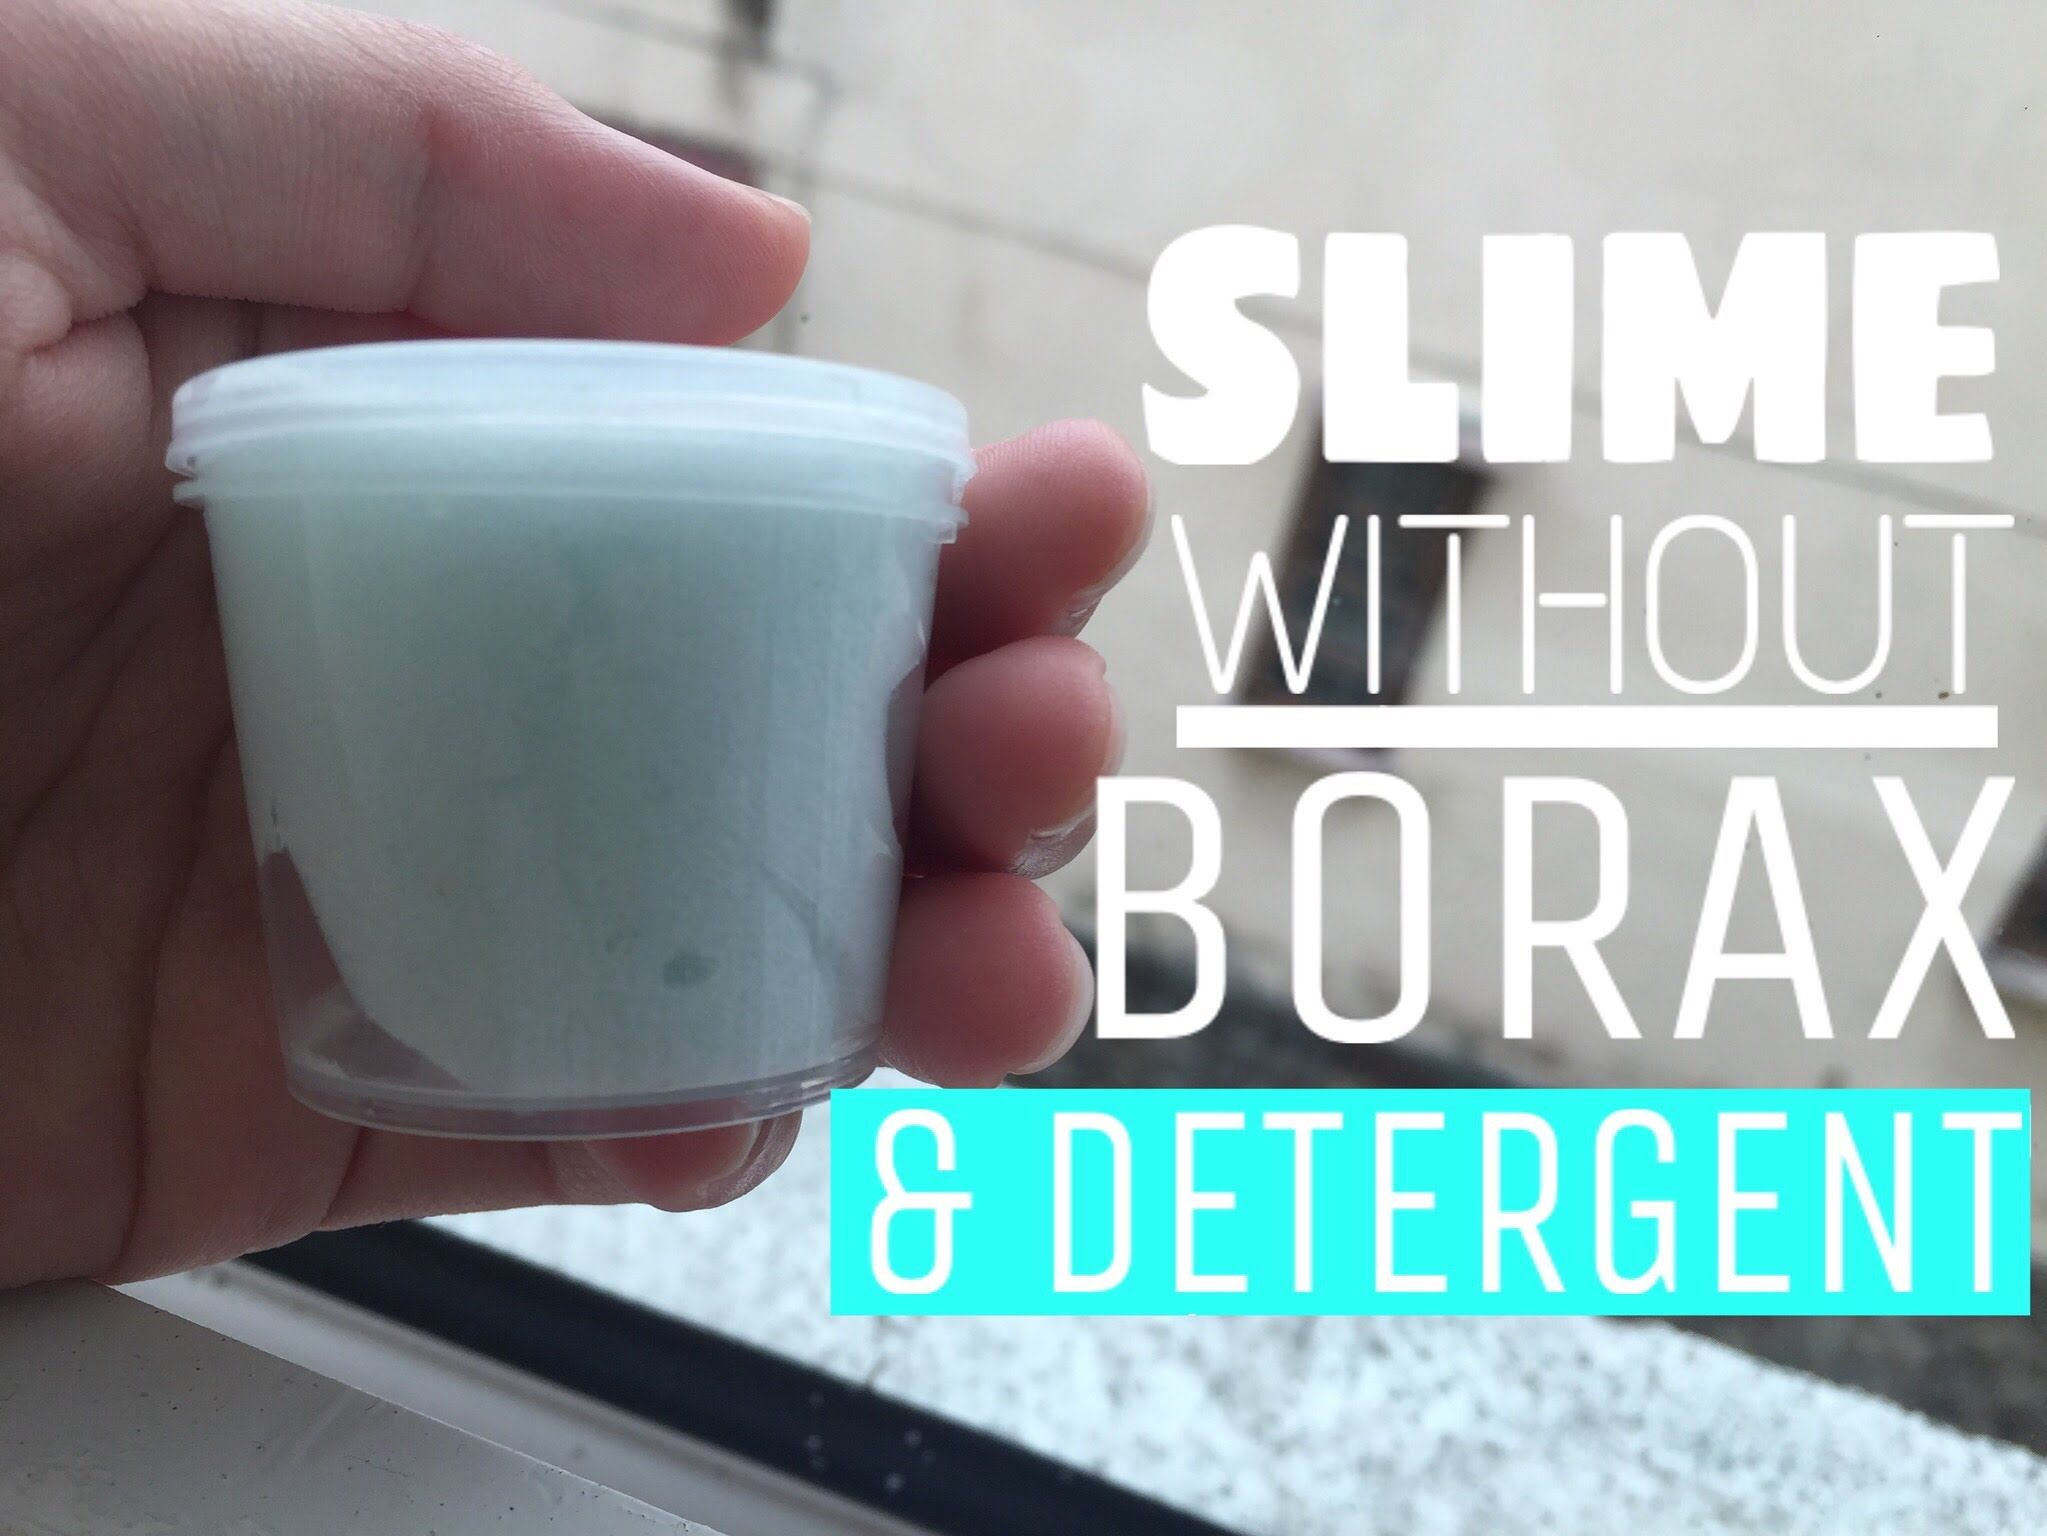 How to make slime easily without borax